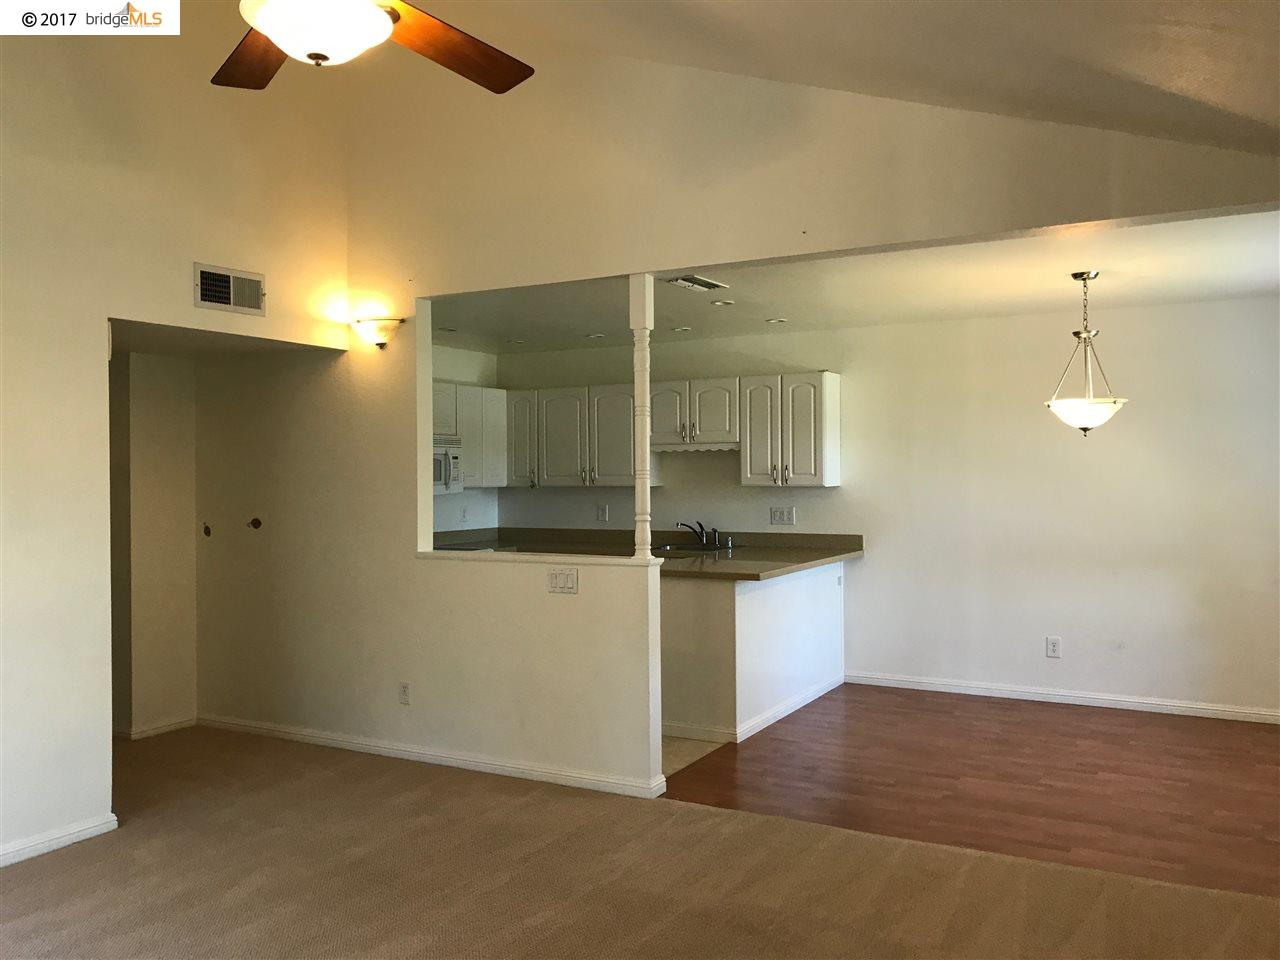 Additional photo for property listing at 2751 Winding Lane 2751 Winding Lane Antioch, California 94531 United States